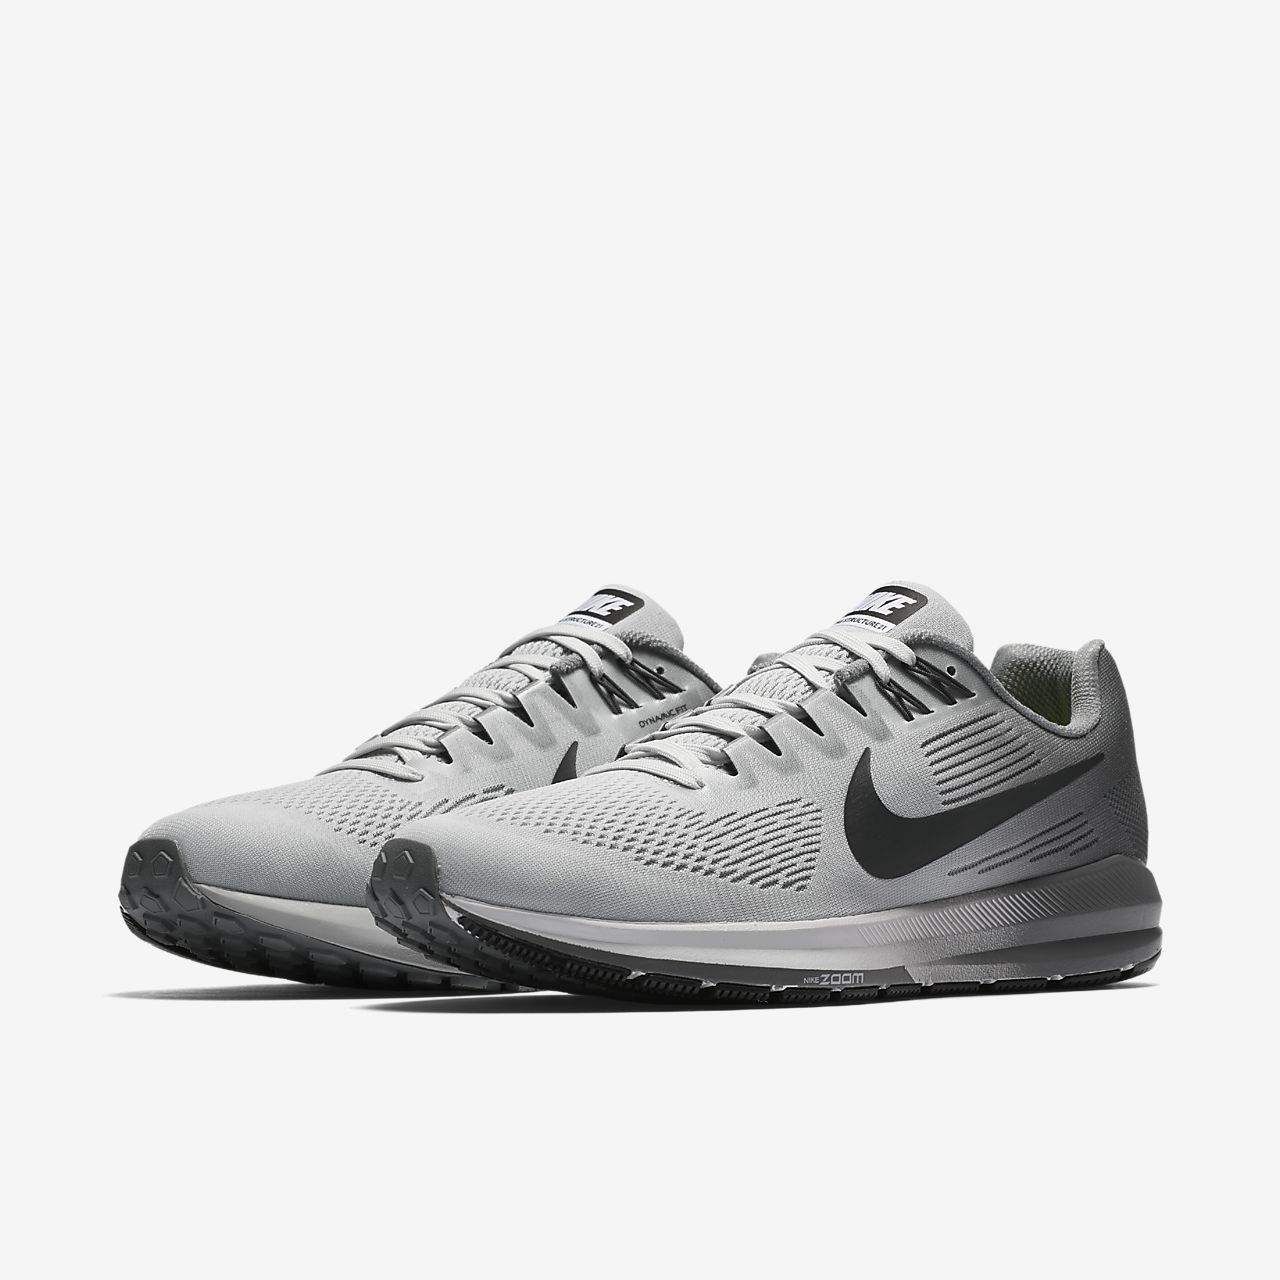 35d7dc6d0864 Nike Air Zoom Structure 21 Men s Running Shoe